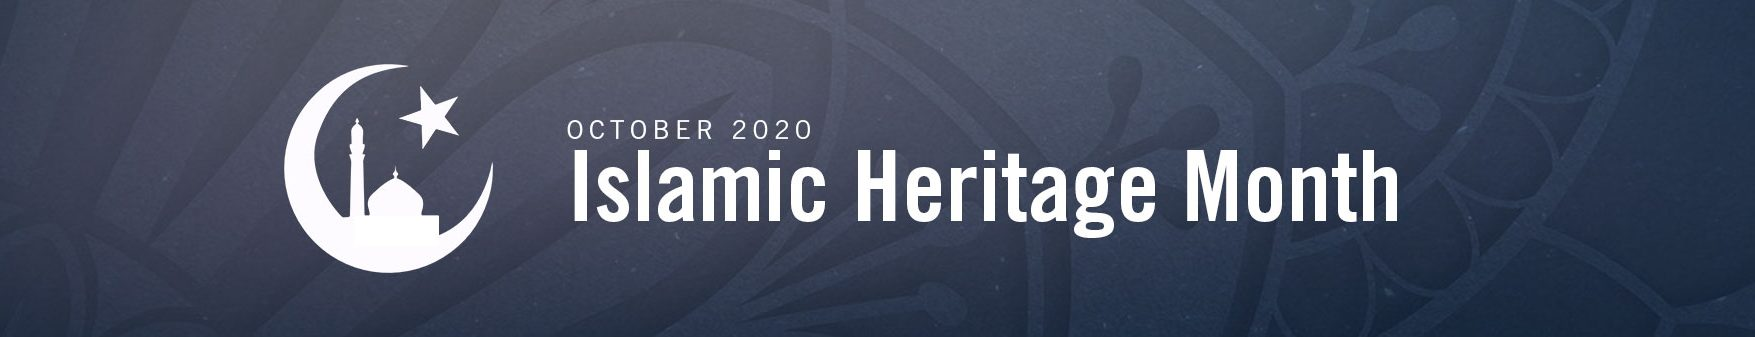 October 2020 is Islamic Heritage Month